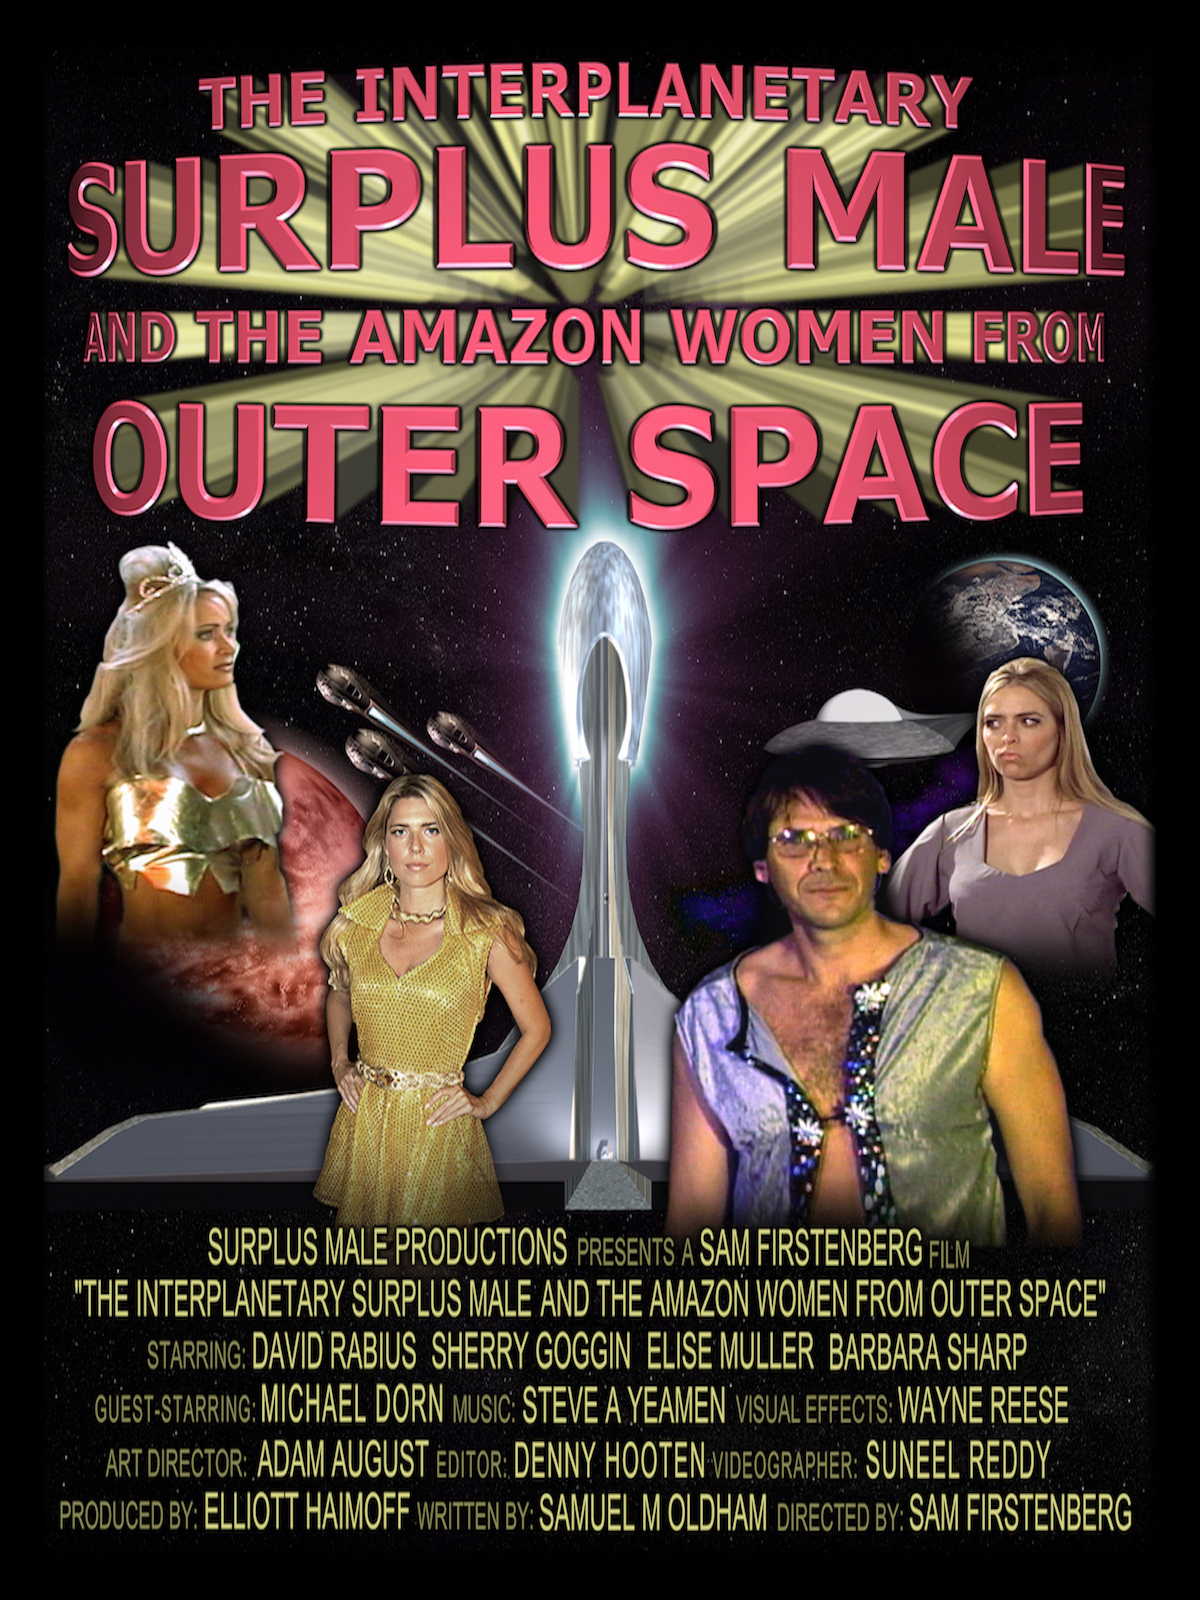 The Interplanetary Surplus Male and the Amazon Women From Outer Space